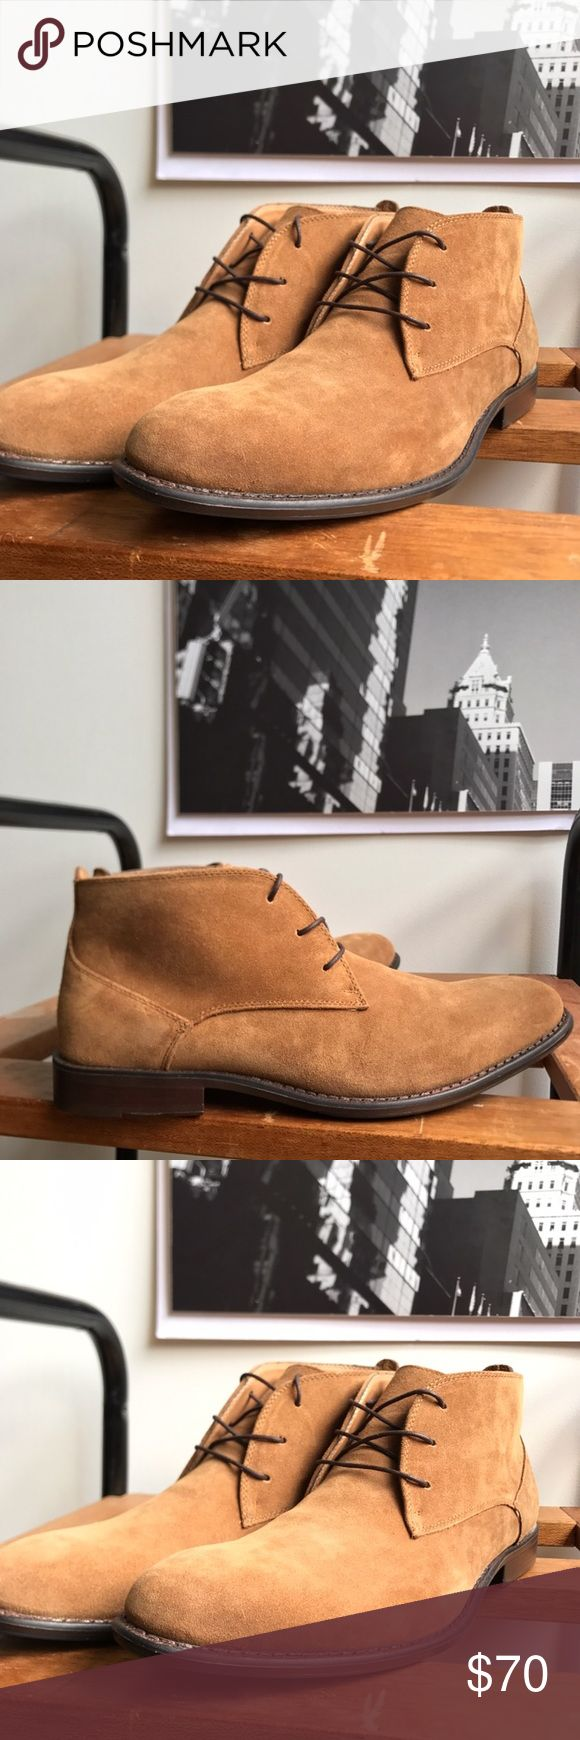 🙌🏾Brand New Aldo Chukka Boots #0194AO Brand new Aldo brown lace up chukka genuine suede leather boot. The outside and inside of the boot is leather. NO TRADES. NO LOWBALL OFFERS, Thank you! #men #aldo  #boot #menstyle #streetwear #fashion #brown #chukka #size7.5 #size37.5 #aldoboot Aldo Shoes Chukka Boots